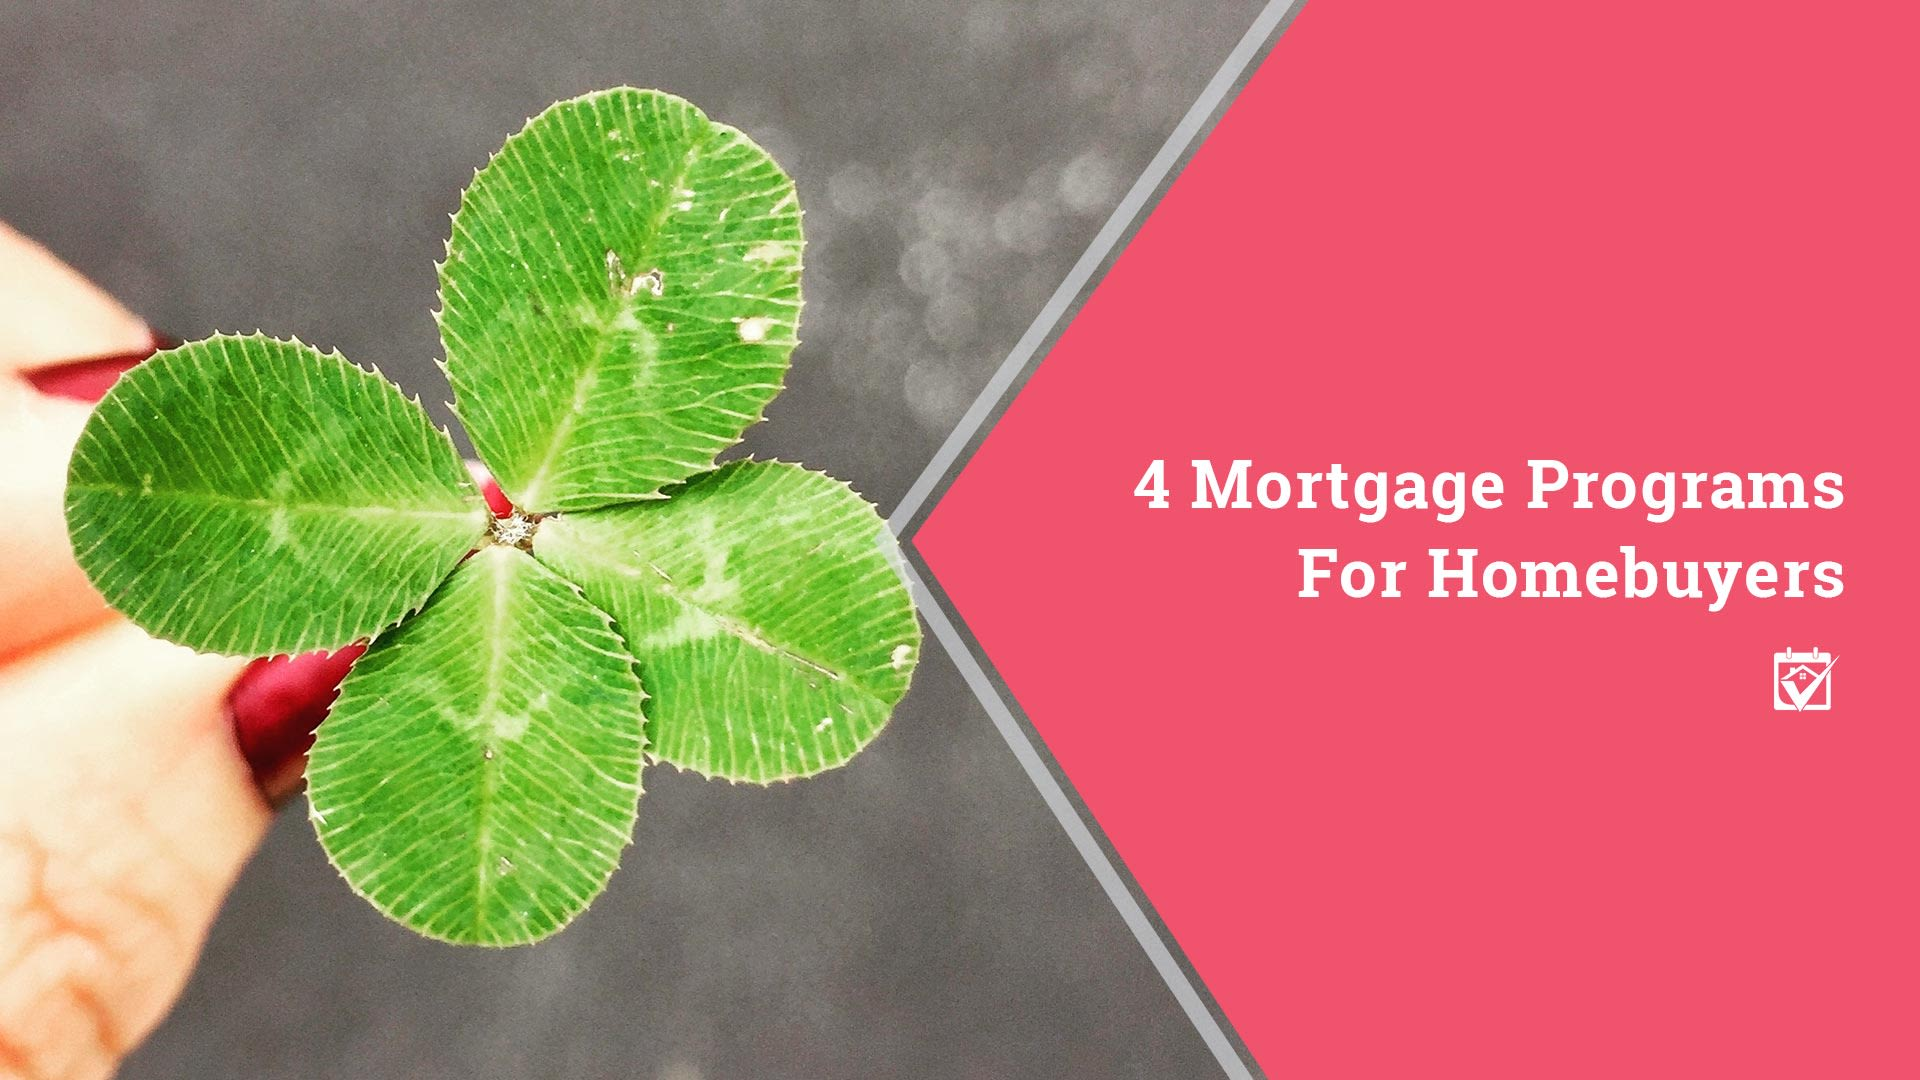 4 Mortgage Programs for Homebuyers